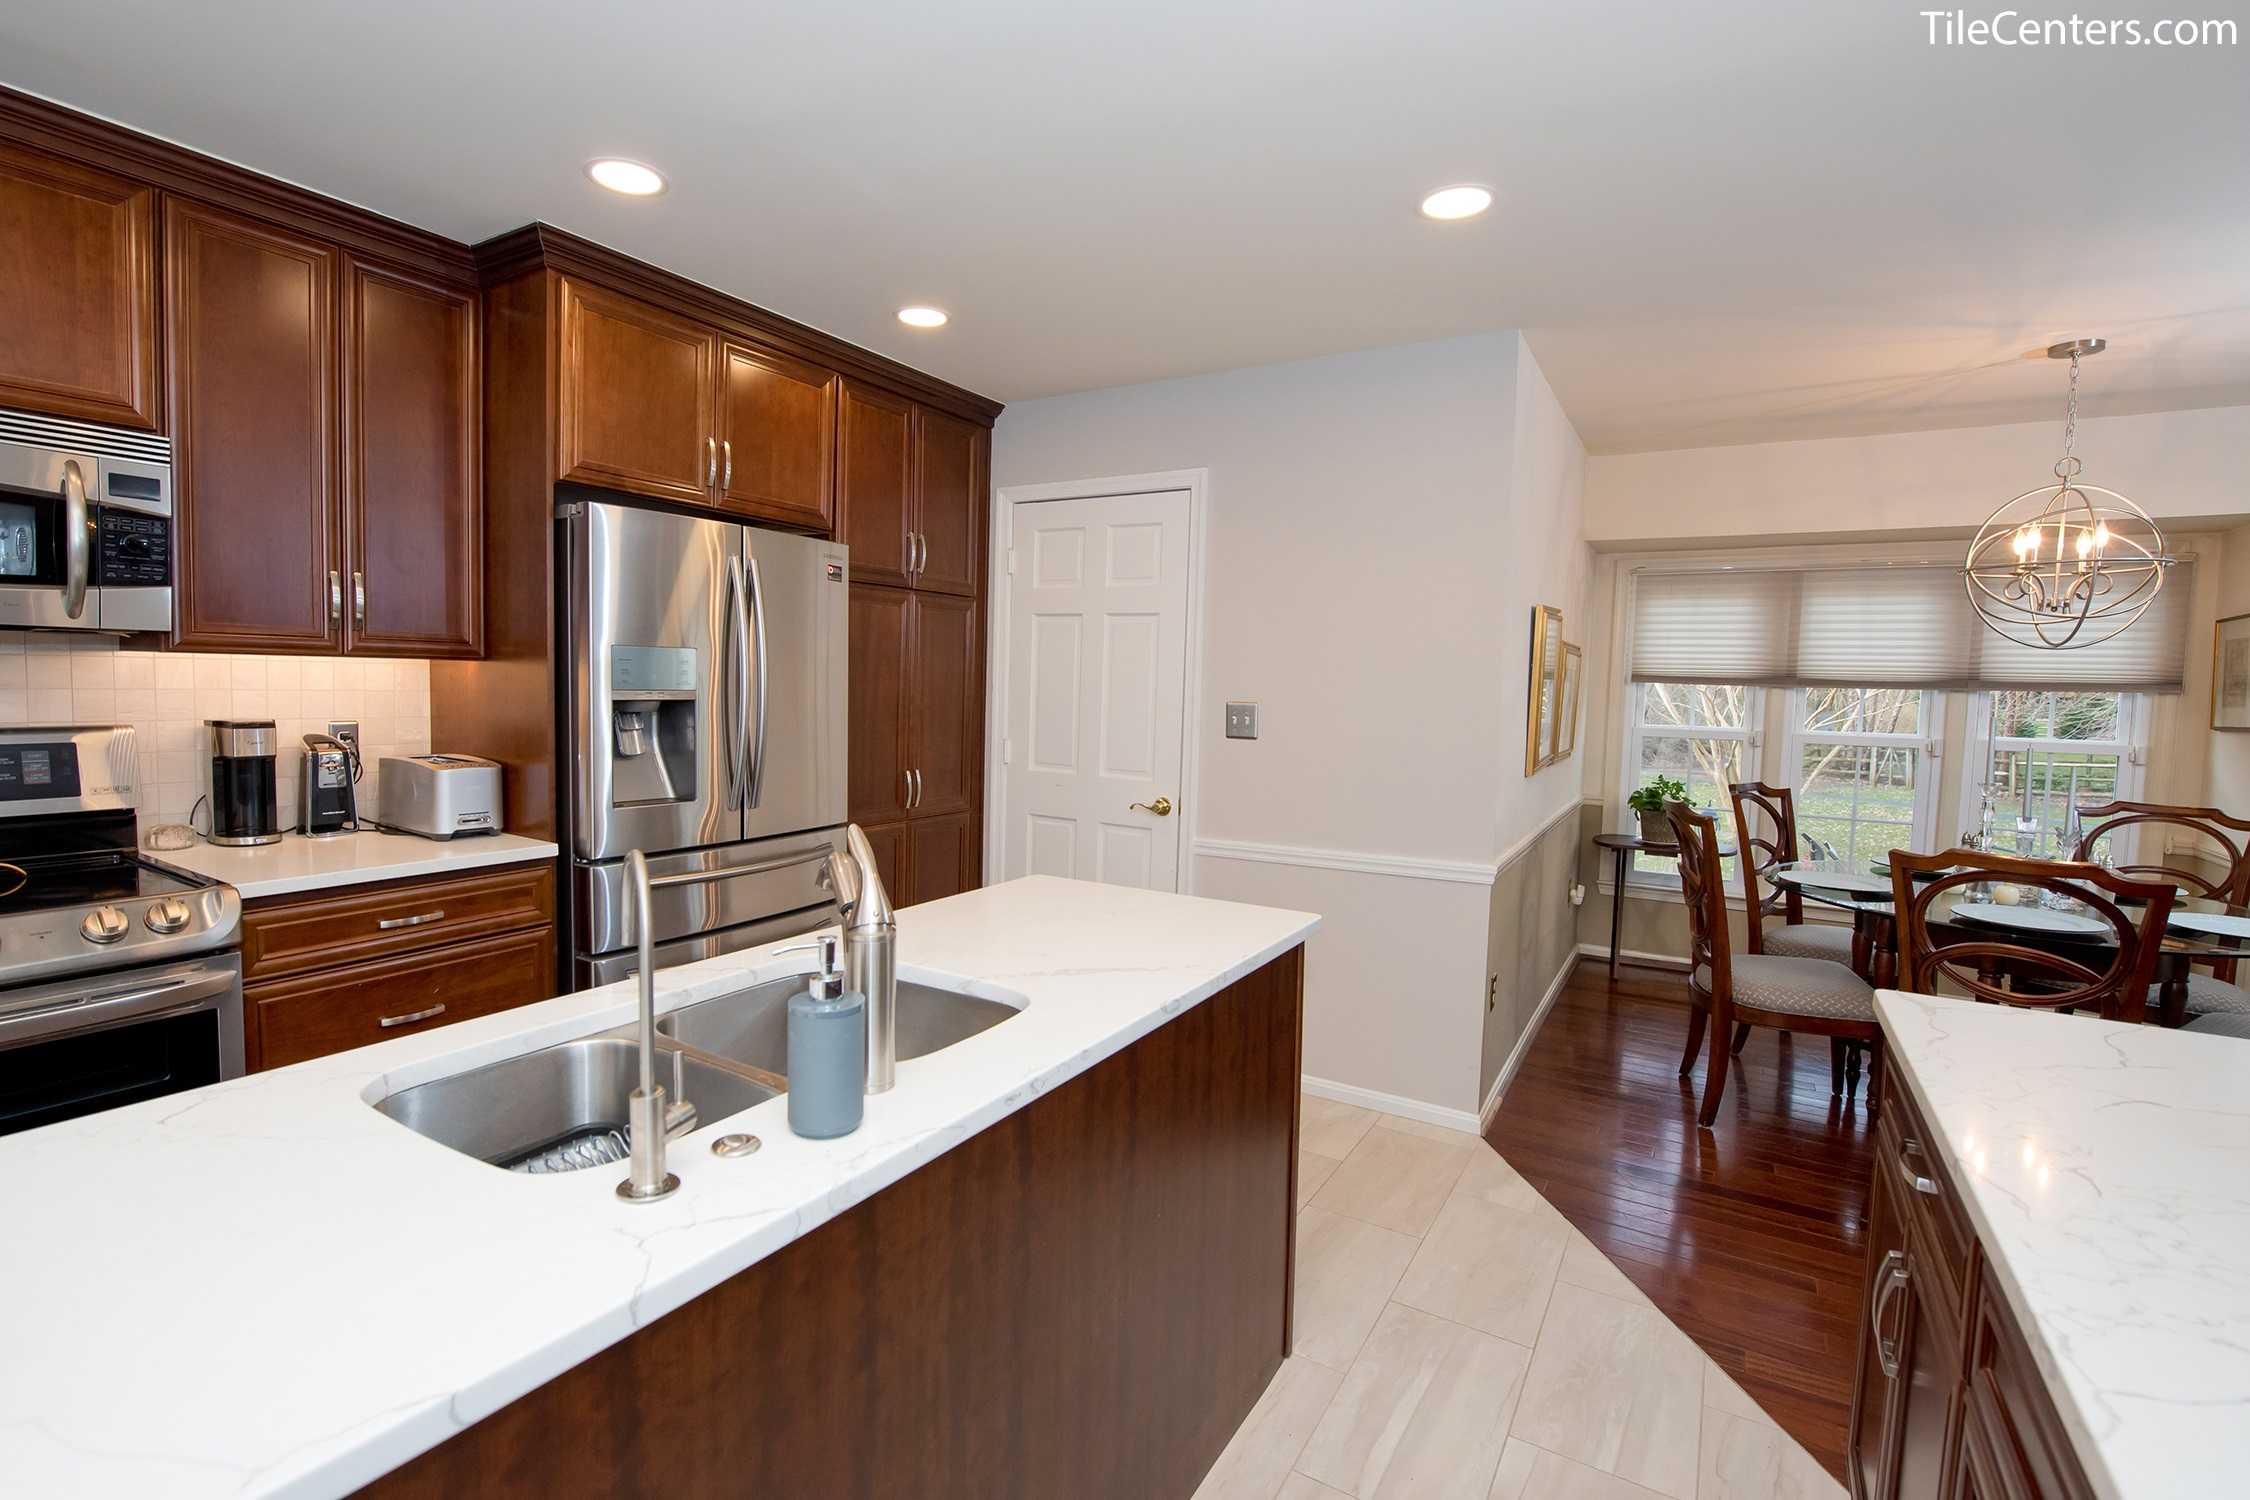 Kitchen Remodel - St. Regis Way, Montgomery Village, MD 20886